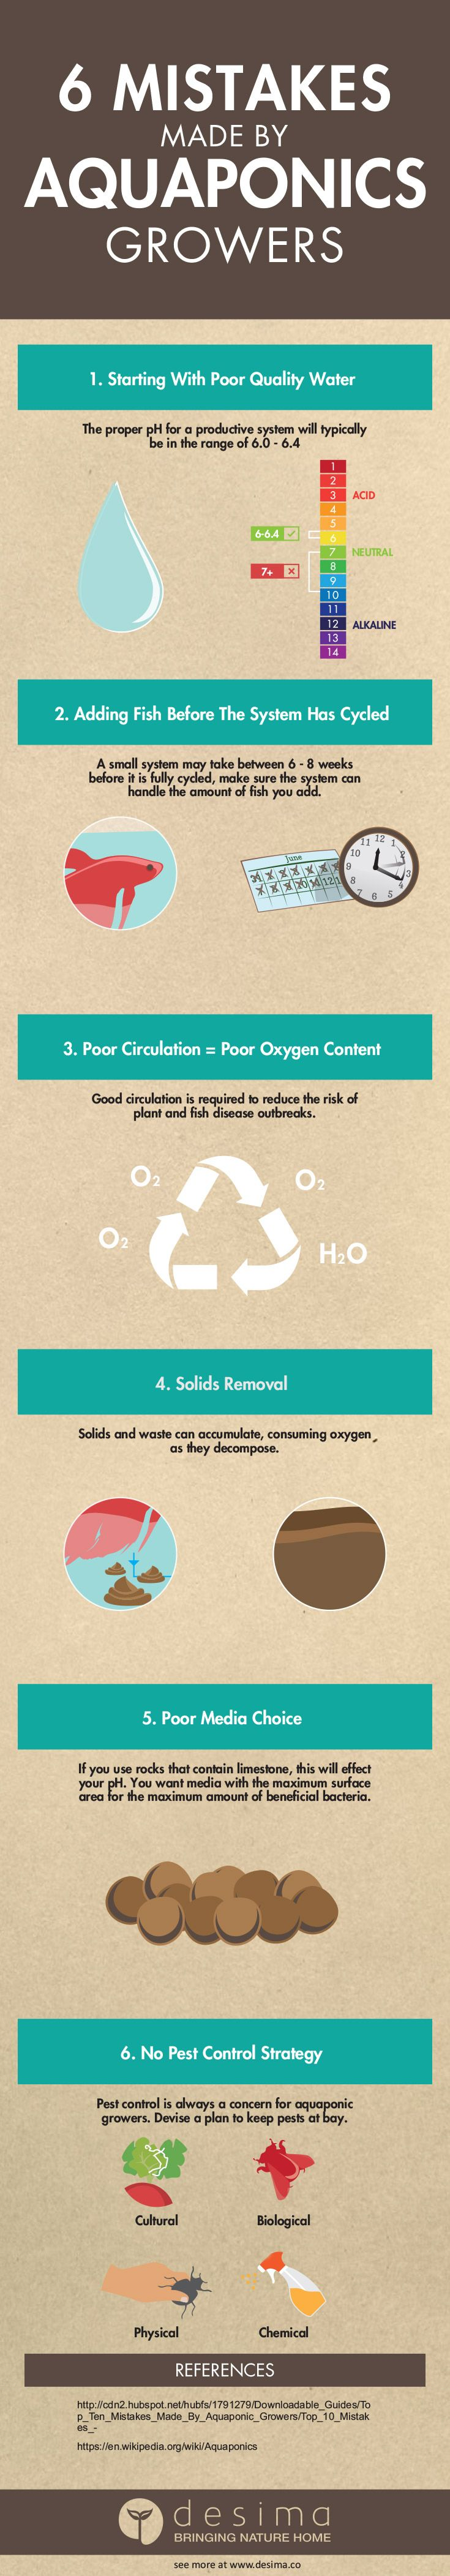 Learn from these 6 common mistakes in aquaponics so that your system can thrive. Remember if you use this infographic on your website, you must have a link back to this page and our home page www.desima.co Featured Mar 27, 2017 Aquaponics aquaponics, commercial aquaponics Kirk Dyer Com